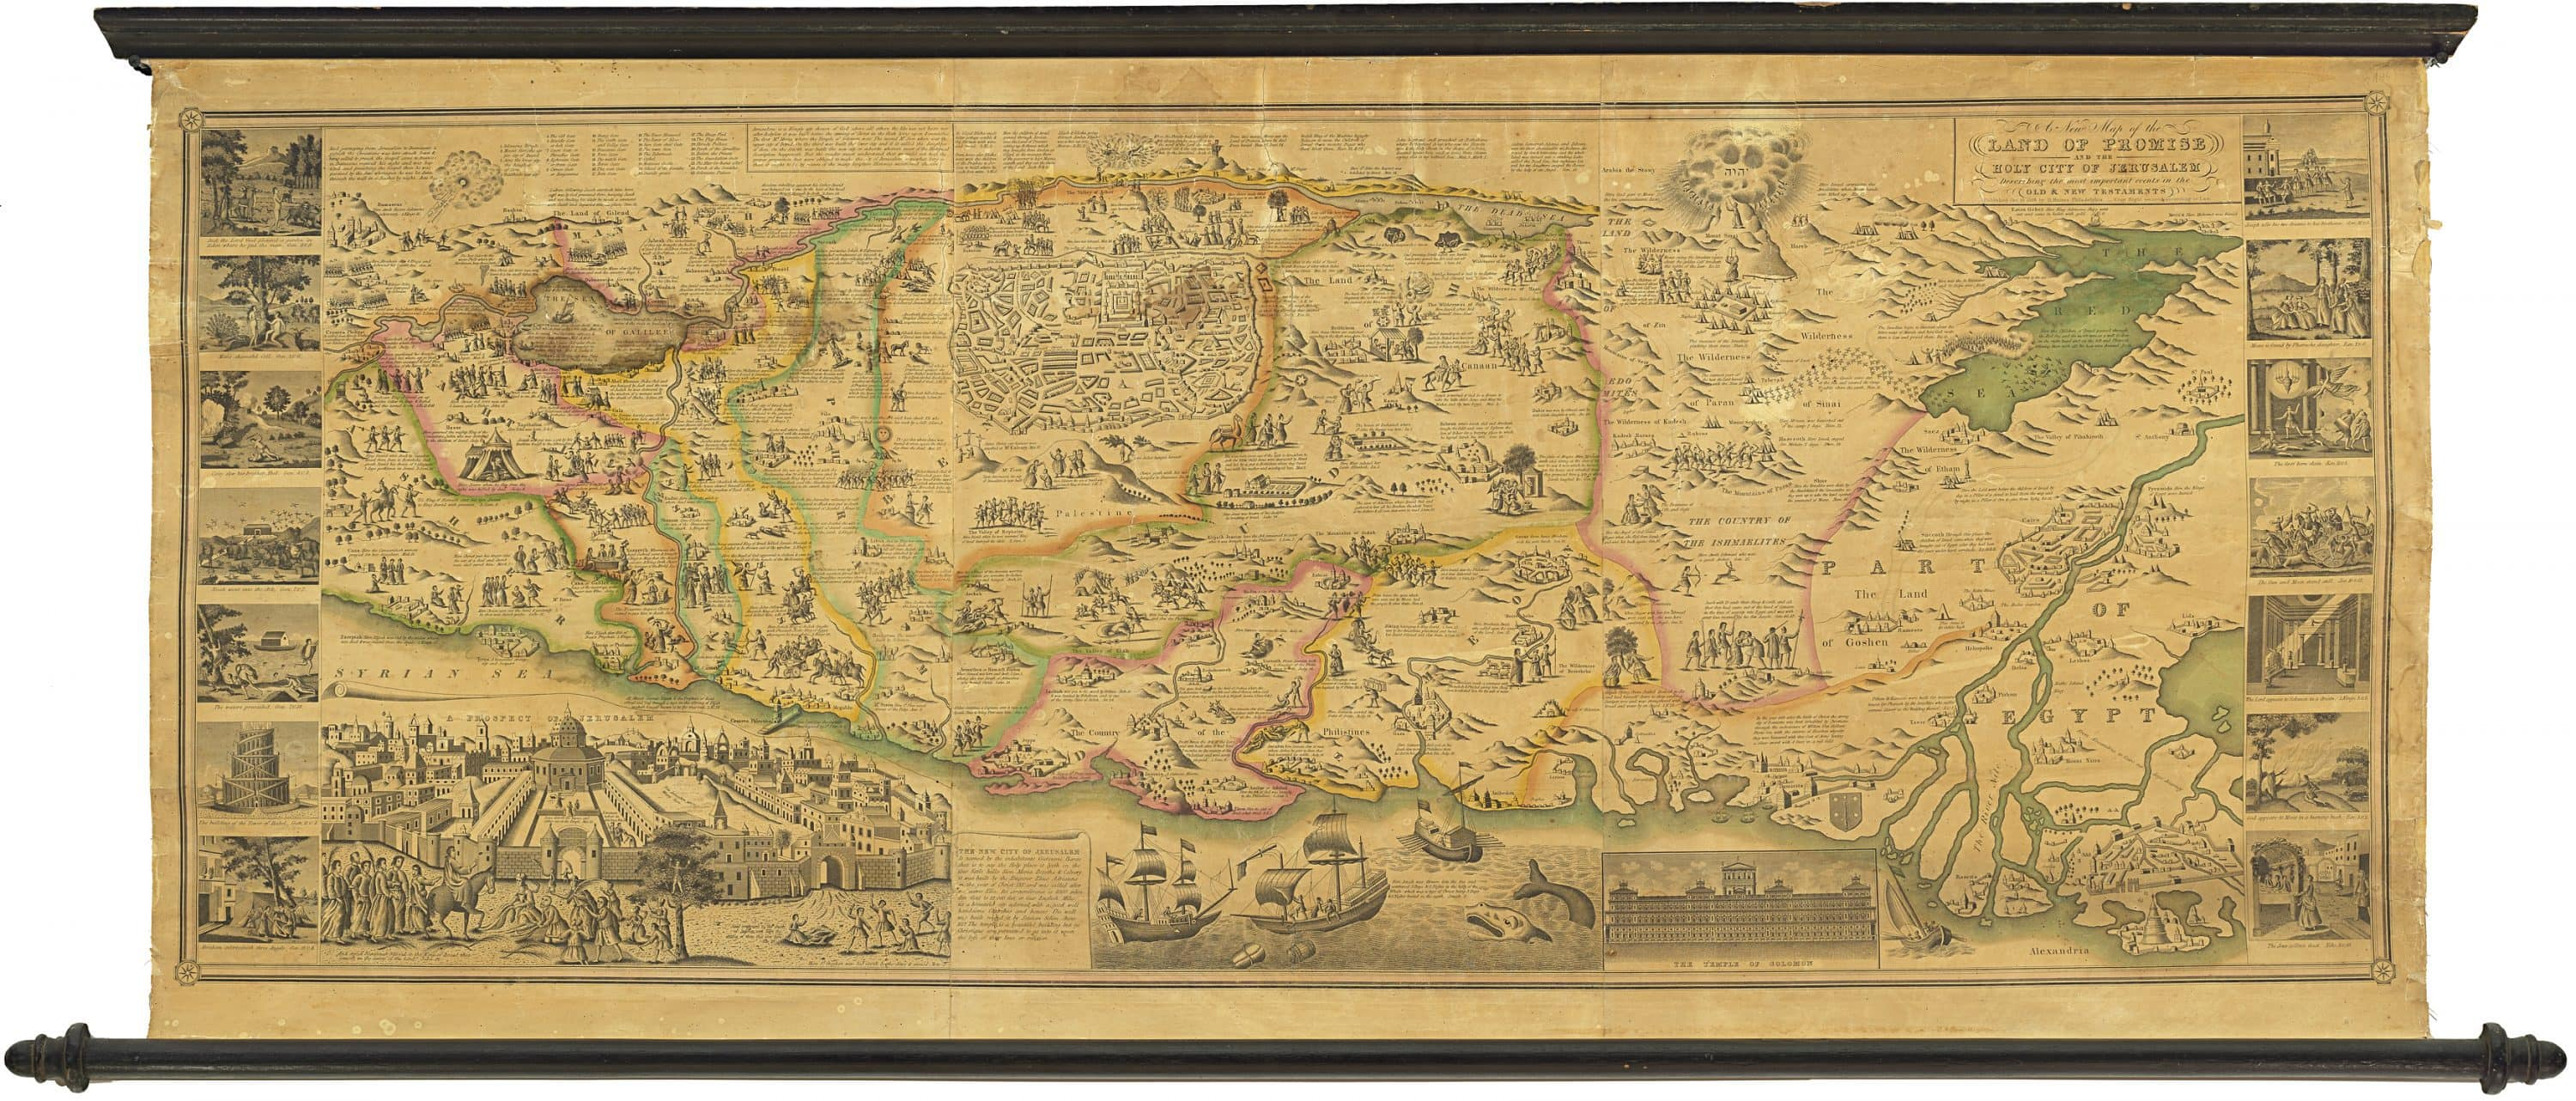 A spectacular American map of the Holy Land - Rare & Antique ... on map of europe holy land, bible map holy land, printable map of holy land, map of holy land today, map of holy land during joshua, large map of holy land, map of jonah's time, map holy land israel, map of bethlehem, modern map of holy land, map holy land in jesus day, map of christian holy land, map of the holy land, map world holy land, map of holy land jesus, cities in the holy land, map of jewish holy land, model of jerusalem holy land, current map of holy land, biblical map holy land,